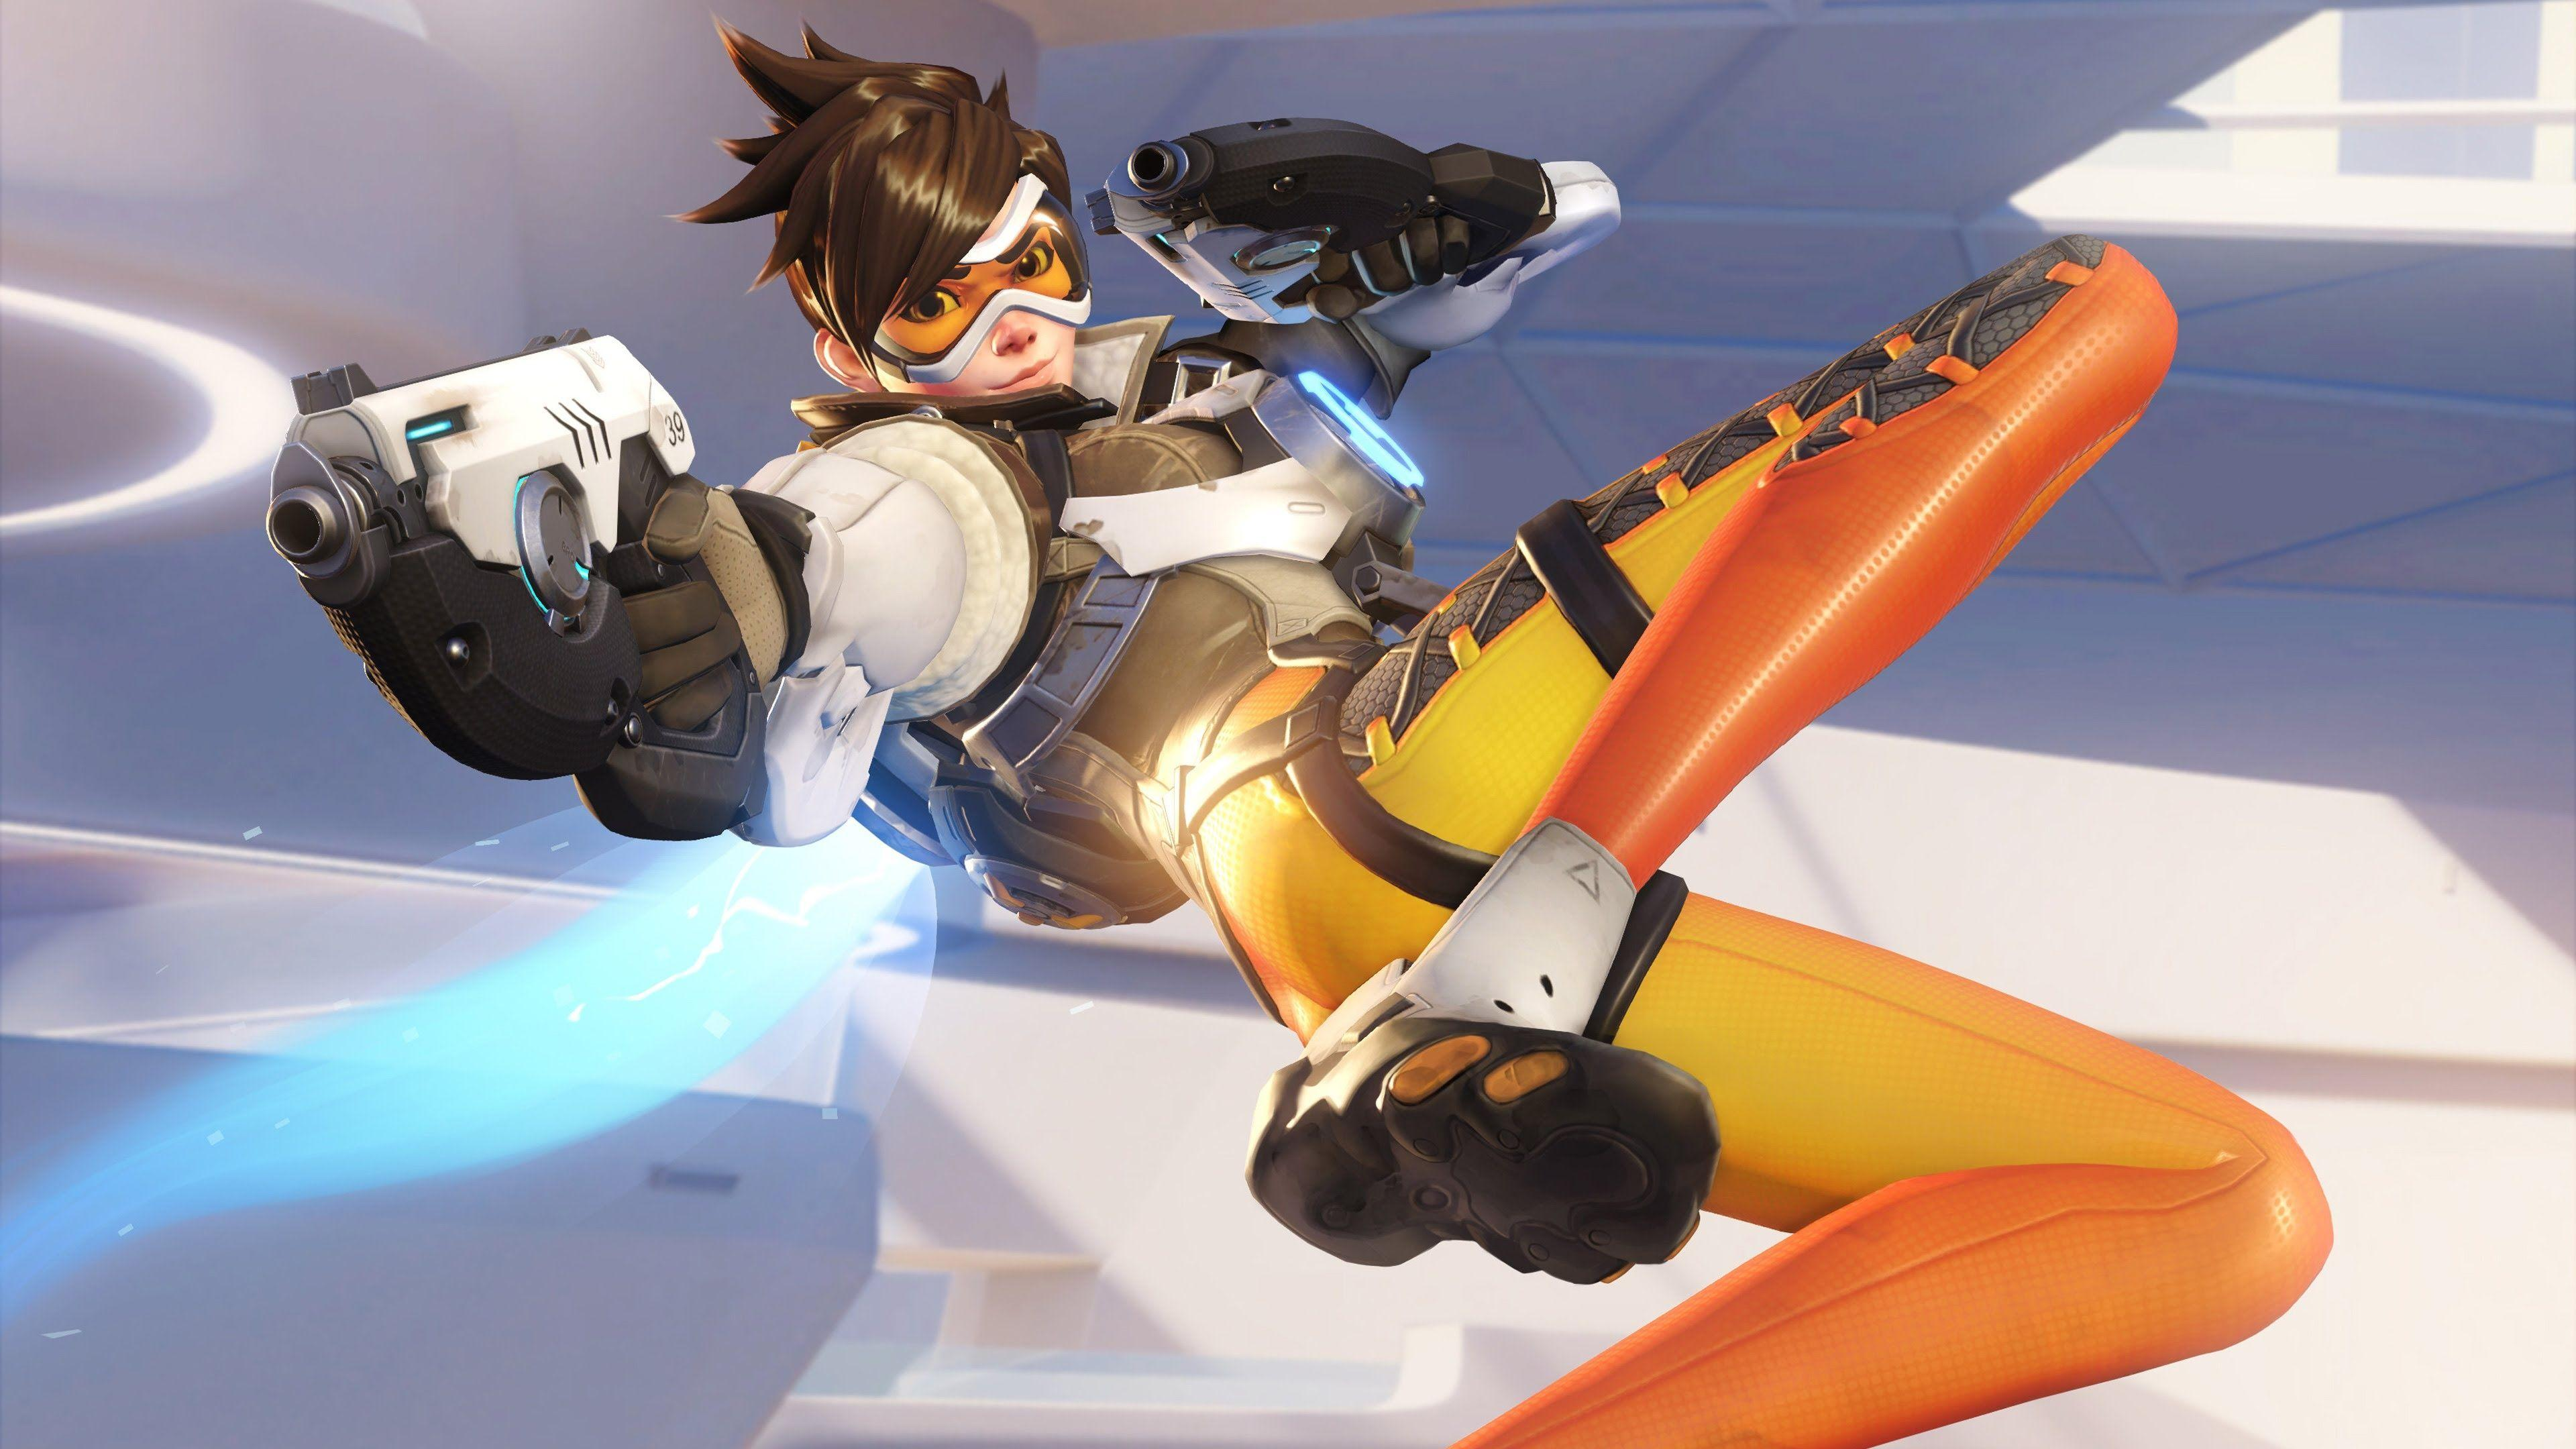 1035 Overwatch HD Wallpapers